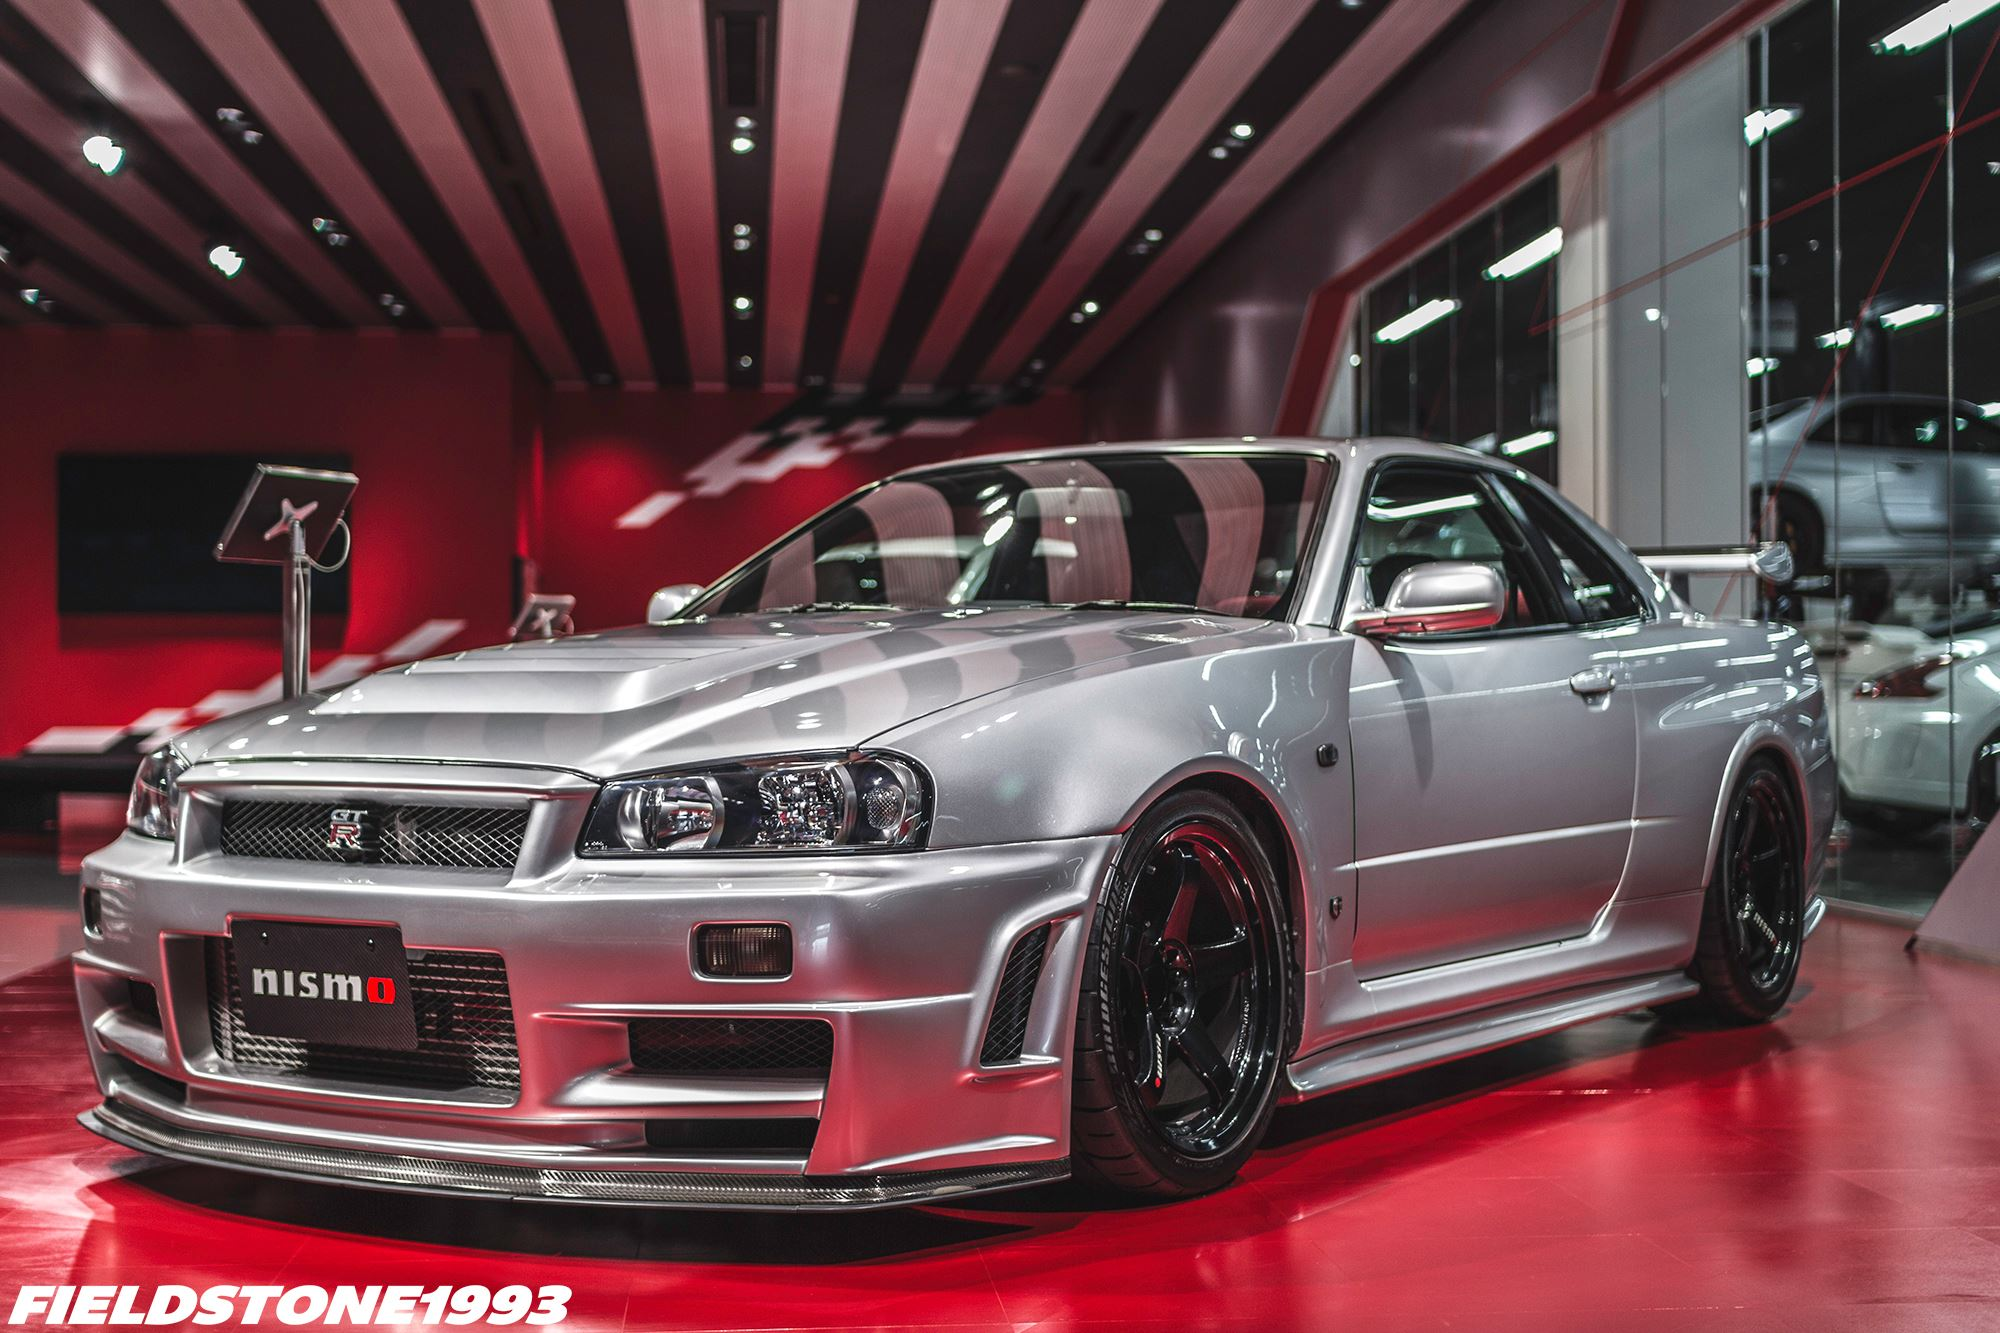 nismo r34 gtr z tune state of art w photo japan related car industry. Black Bedroom Furniture Sets. Home Design Ideas